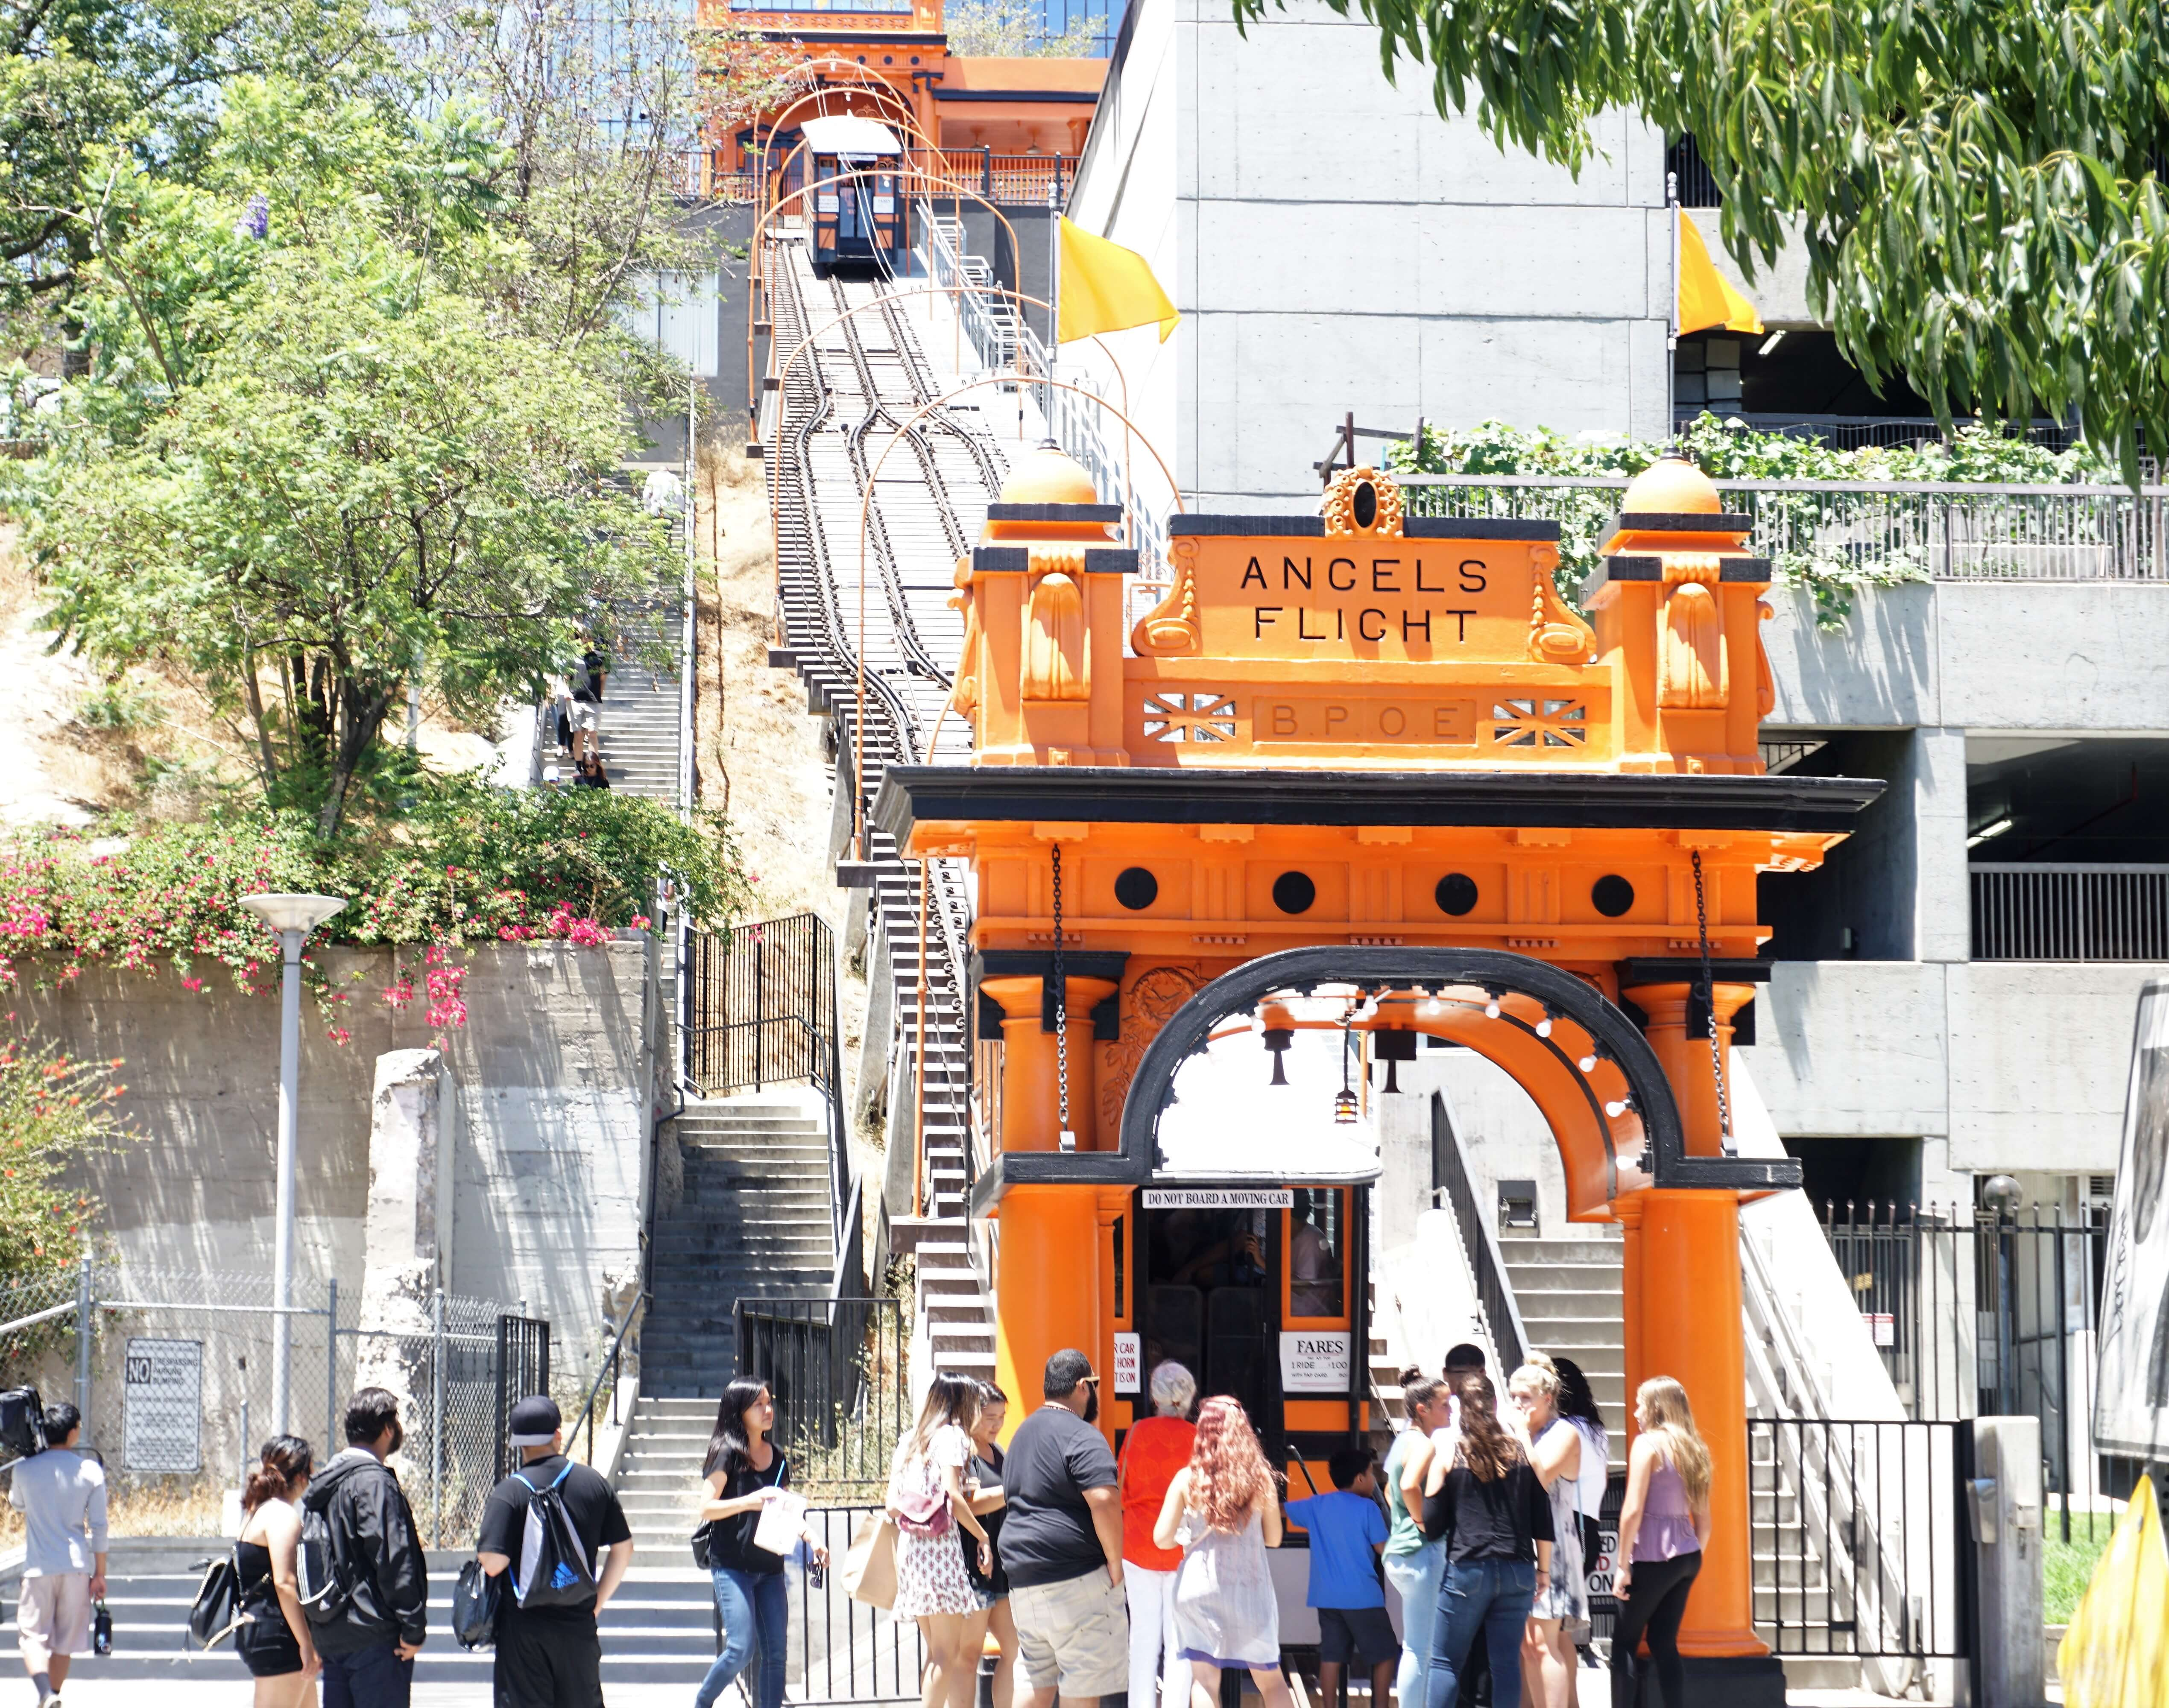 Angels Flight Railway in Downtown Los Angeles